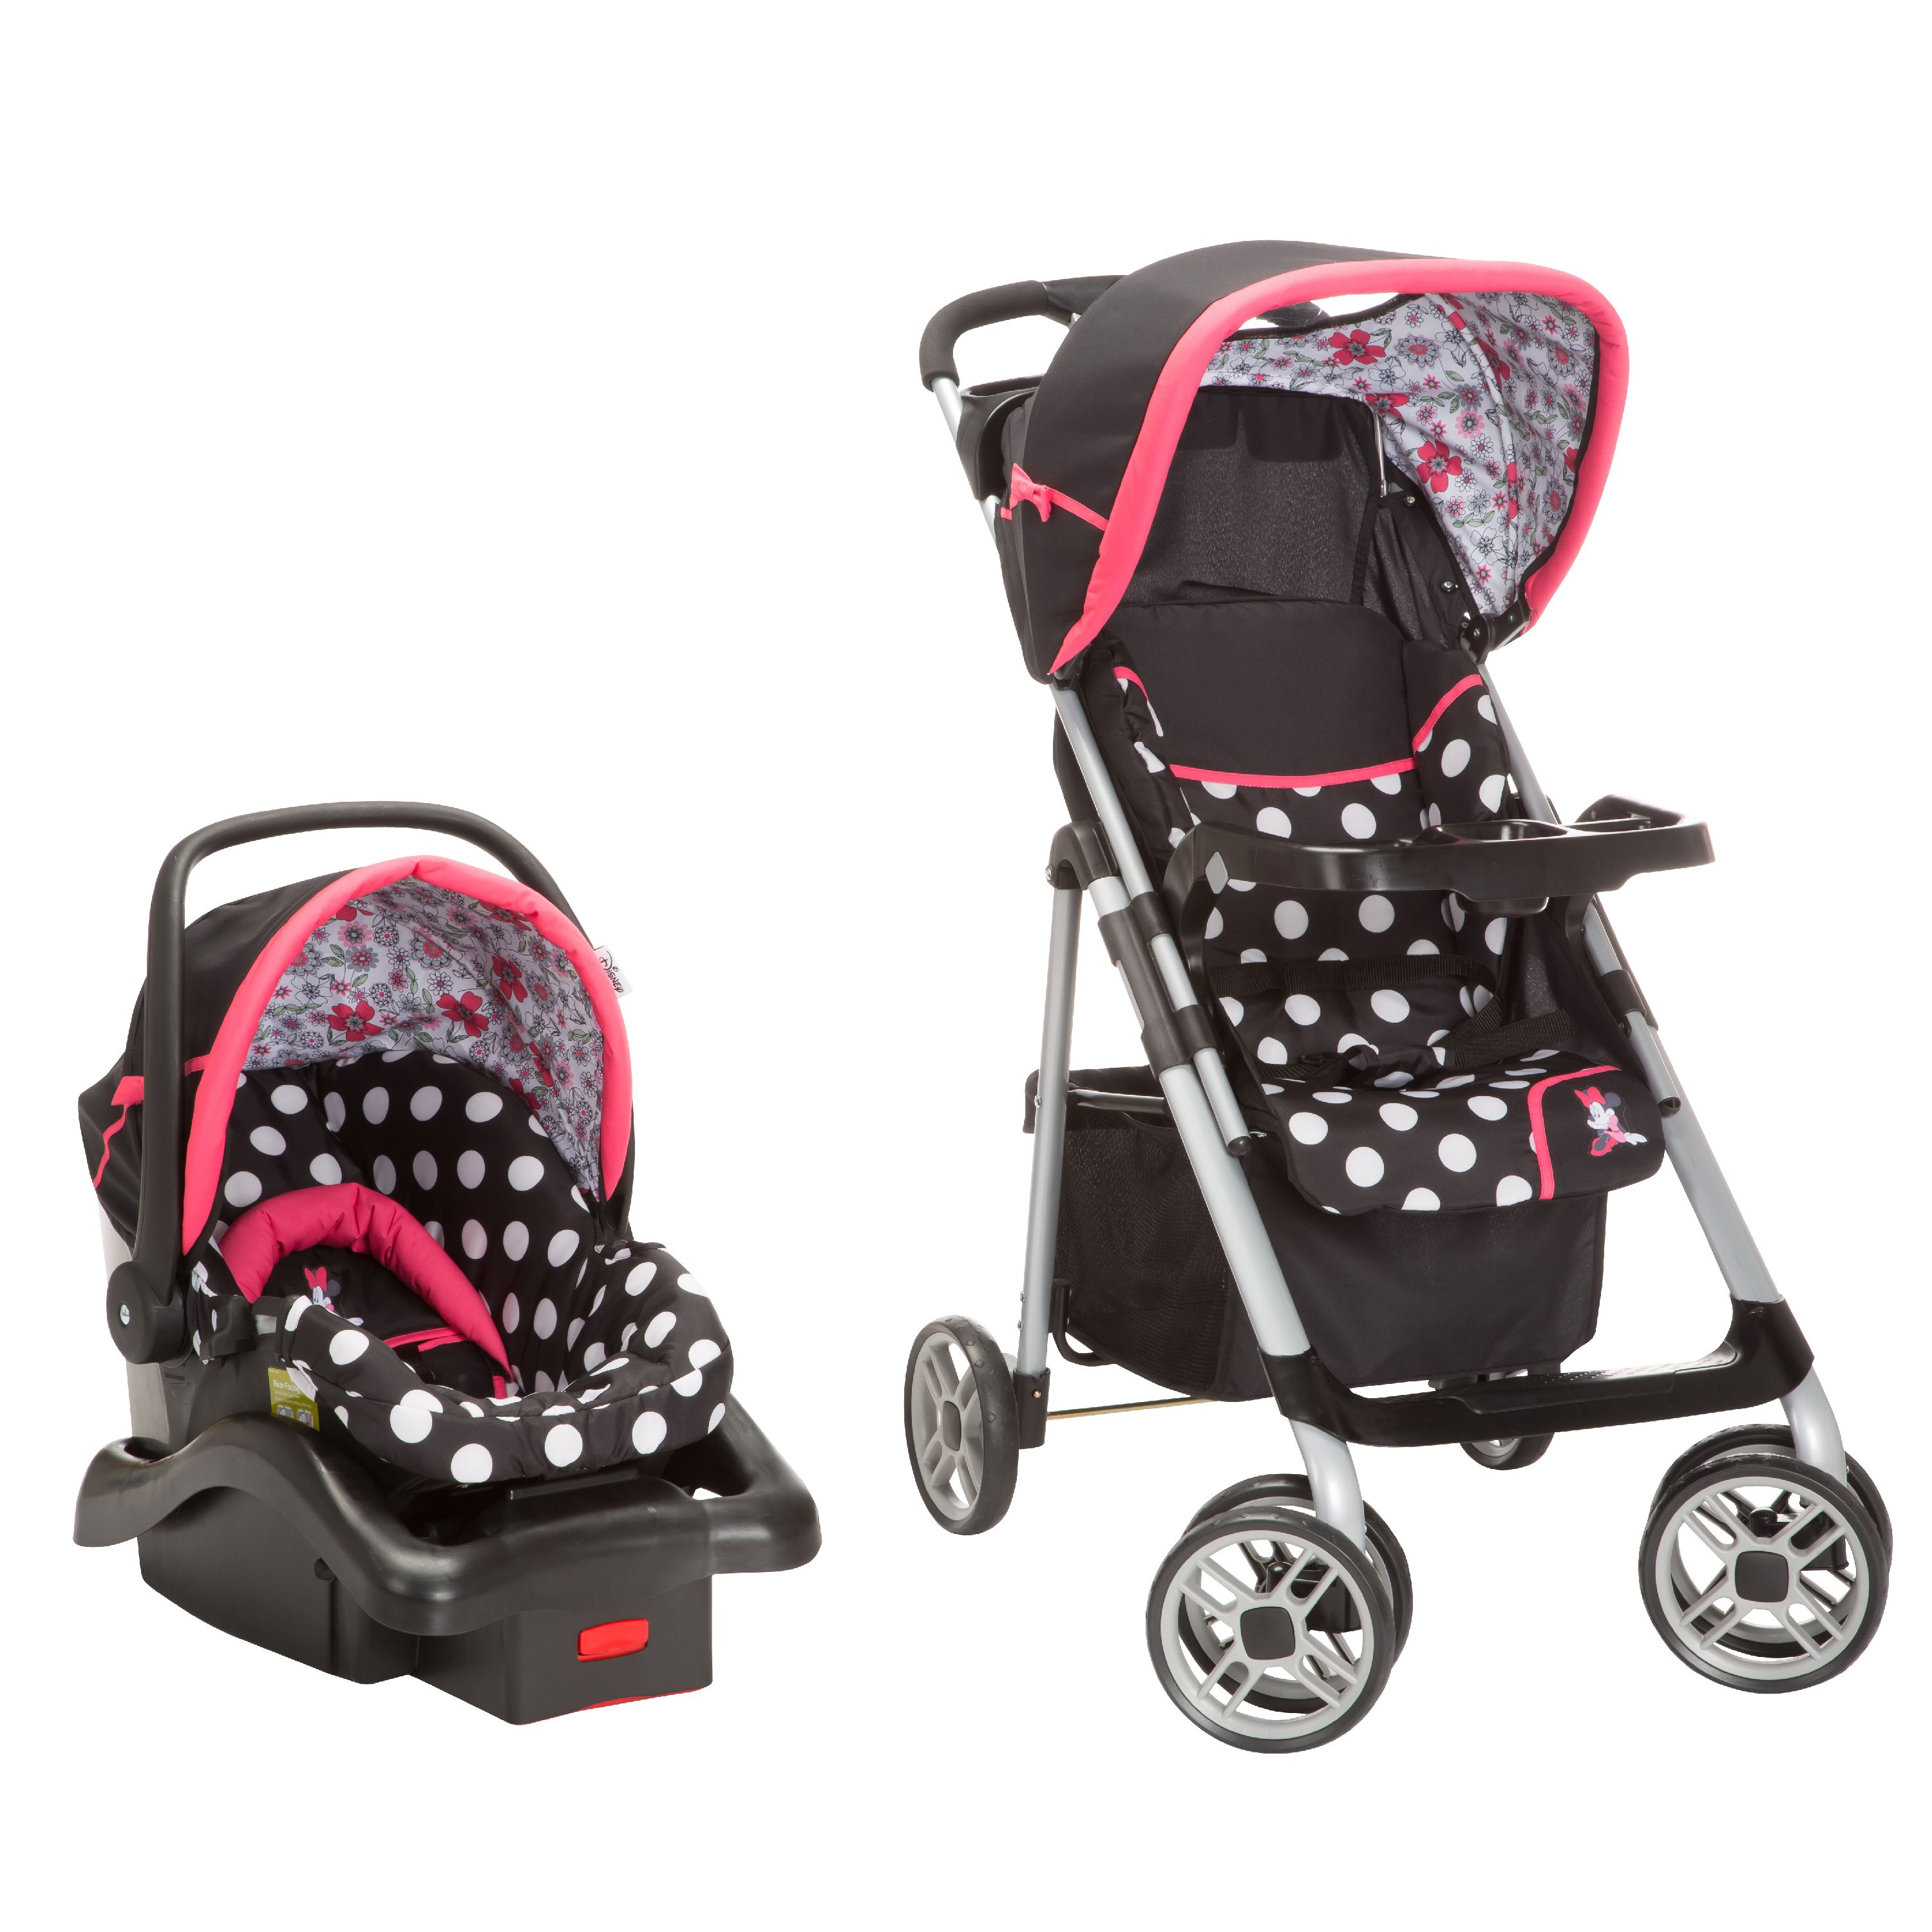 Disney Baby Saunter Sport LC-22 Travel System, Minnie Coral Flowers